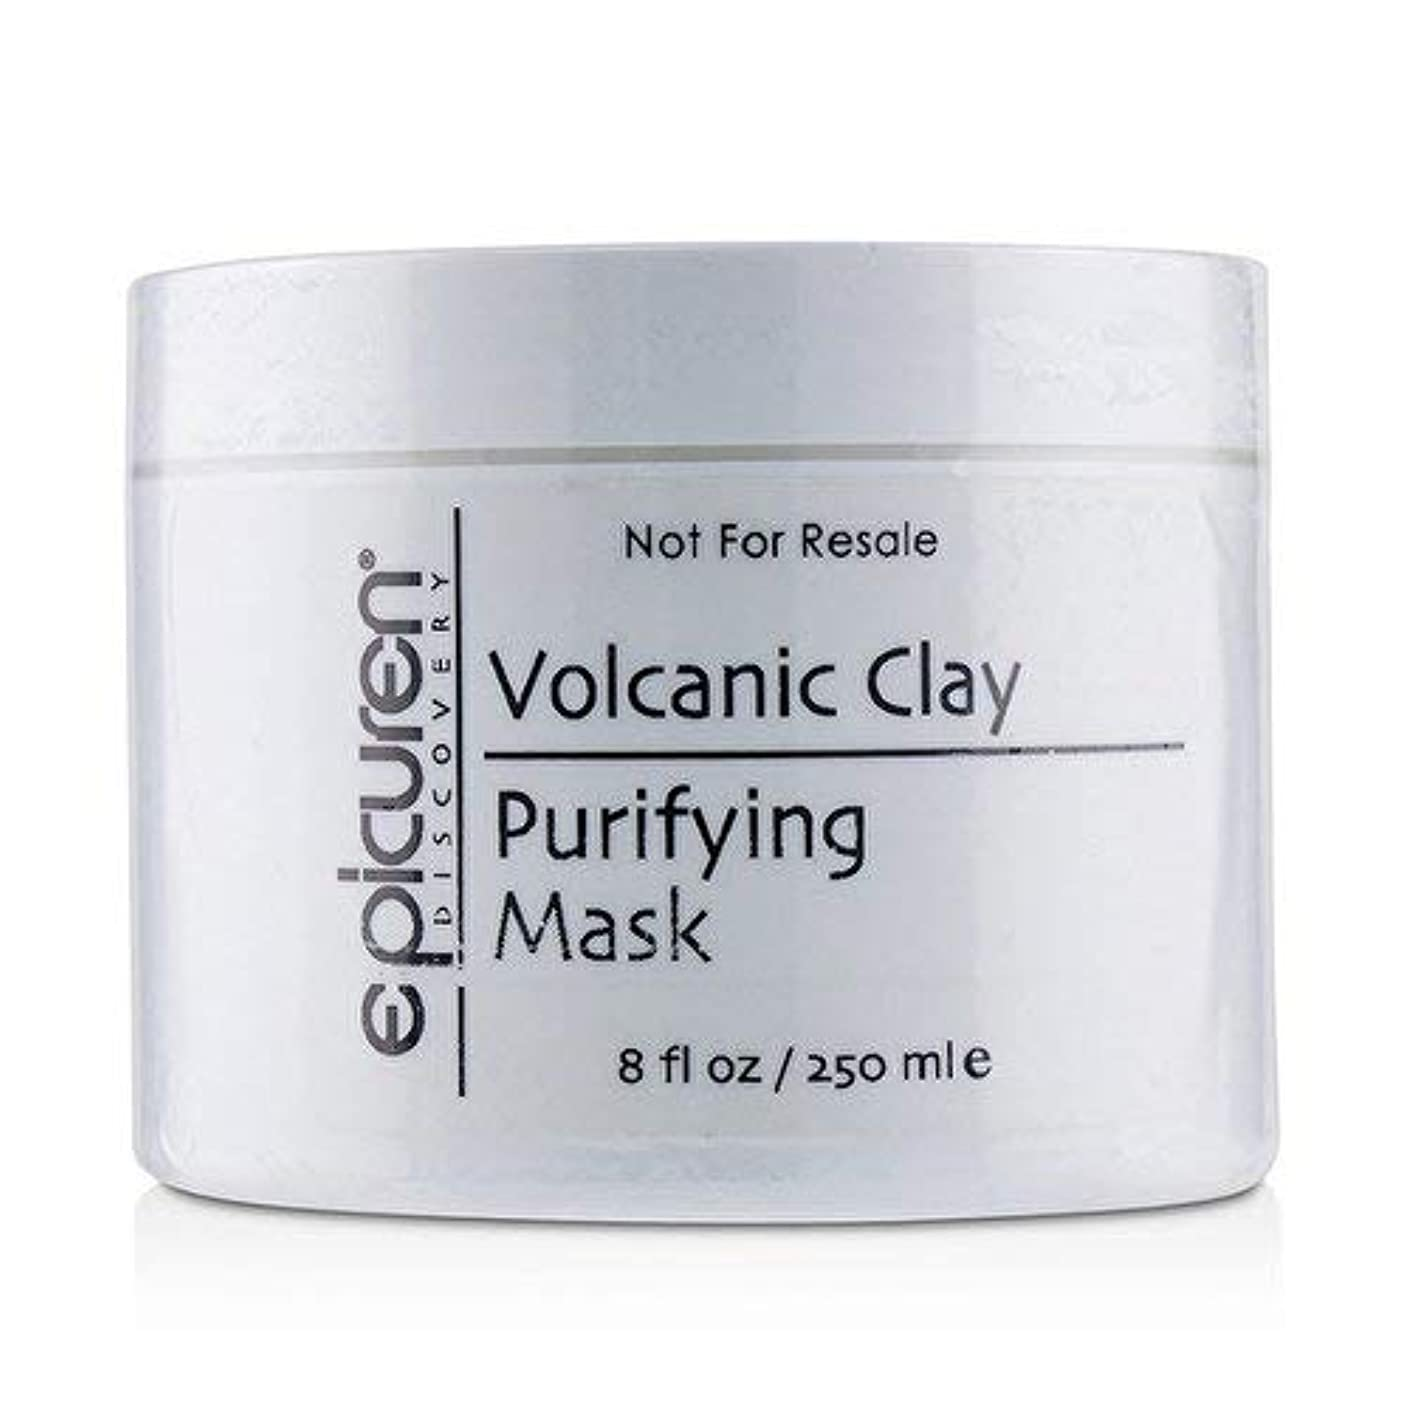 栄光の残忍な技術者Epicuren Volcanic Clay Purifying Mask - For Normal, Oily & Congested Skin Types 250ml/8oz並行輸入品